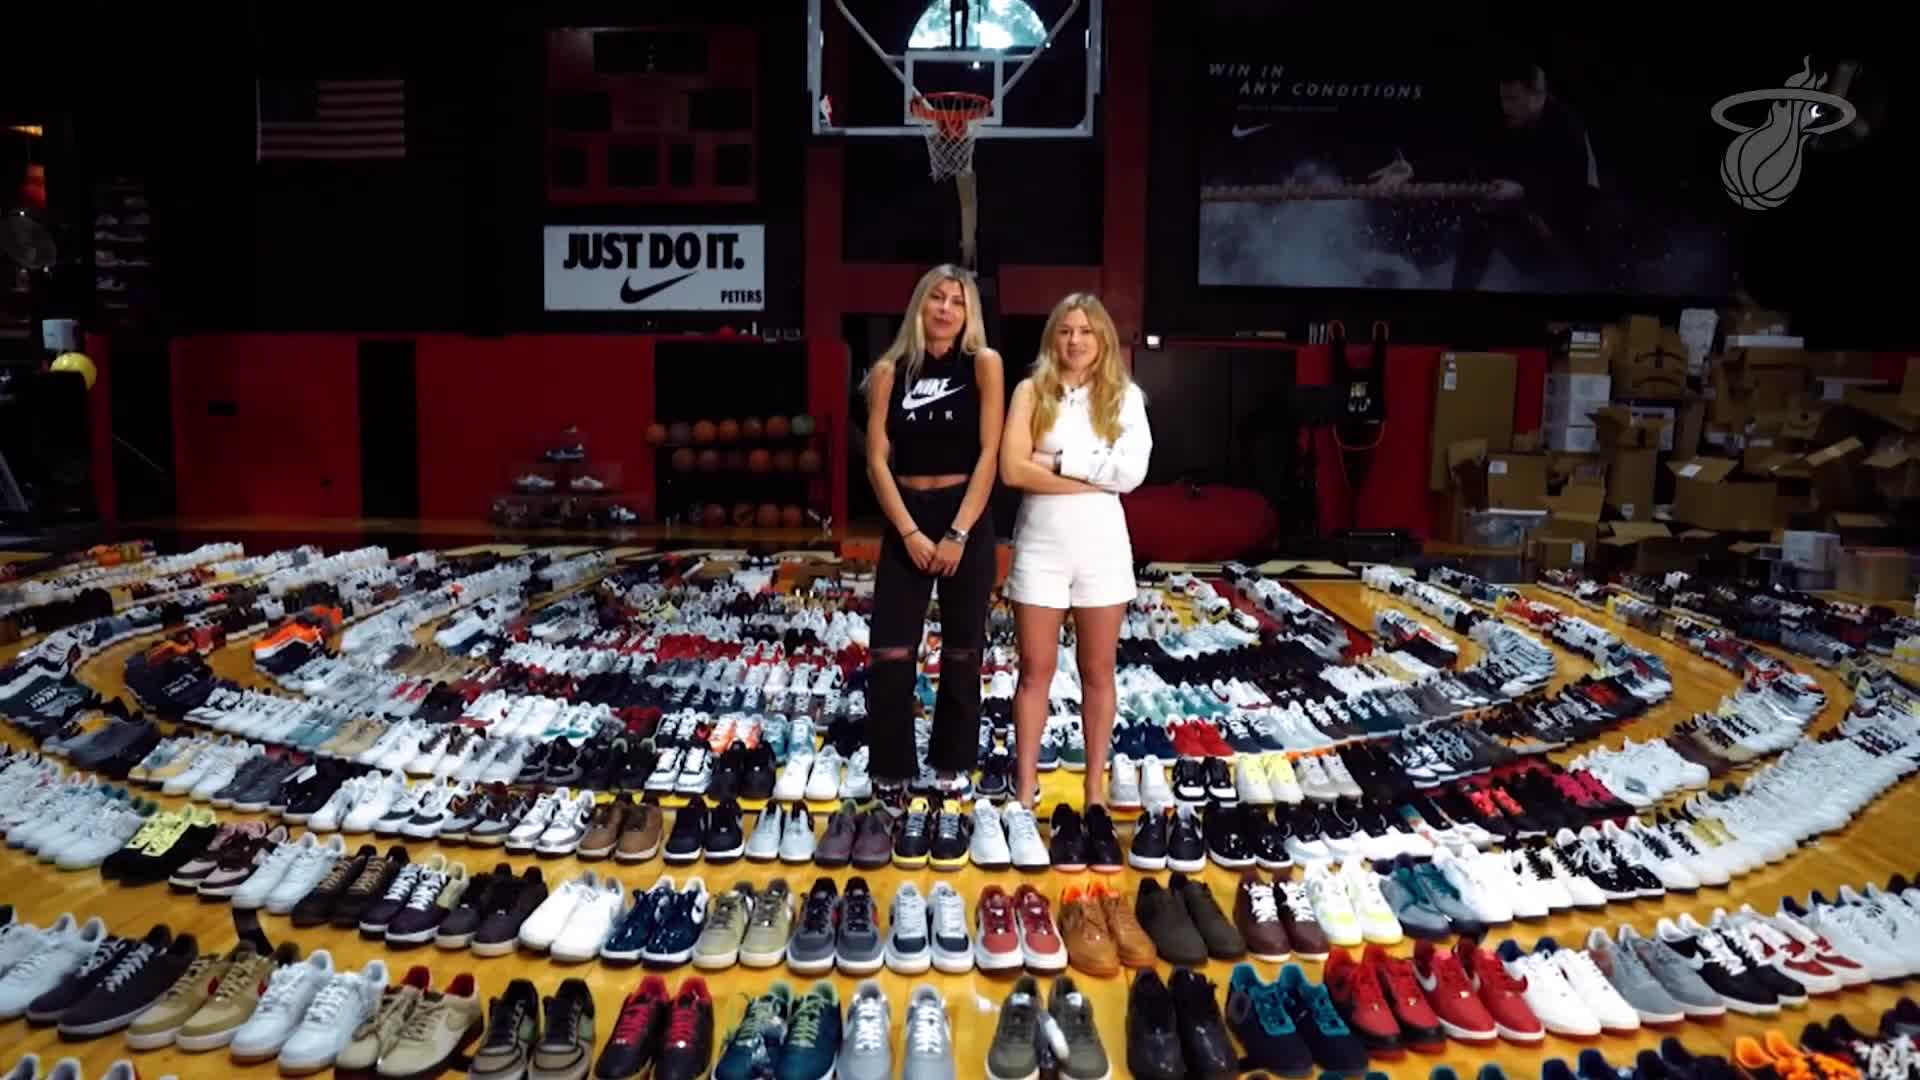 Not Your Average Sneaker Closet: The Chicks with Kicks